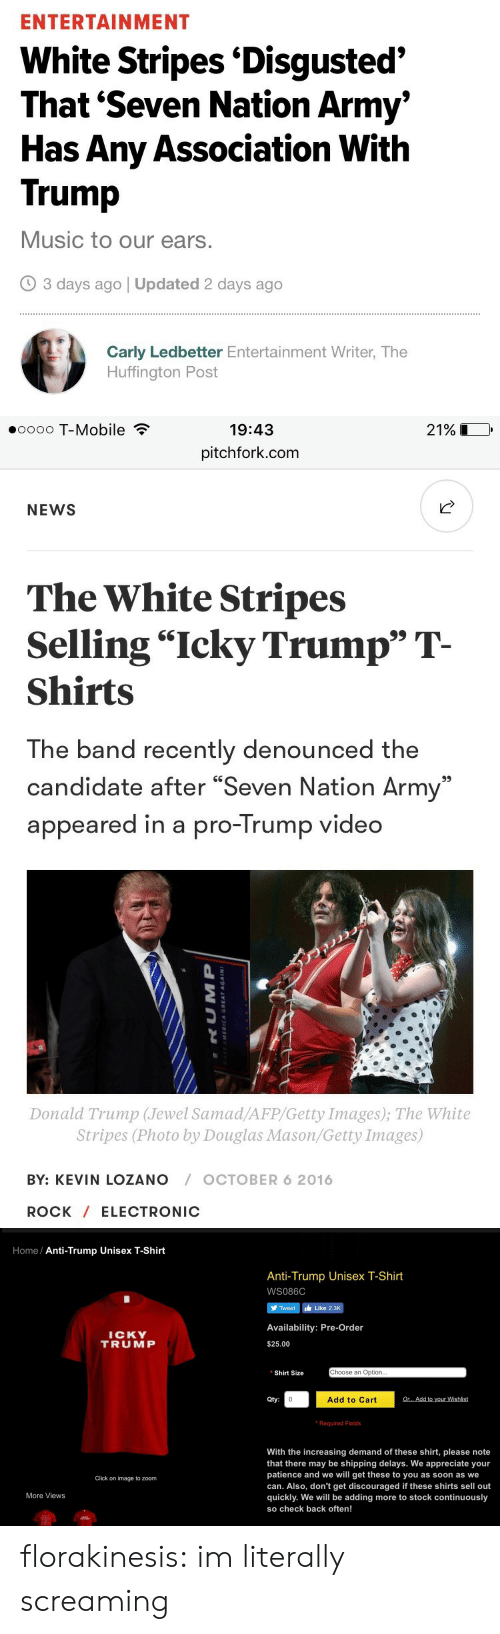 """Click, Donald Trump, and Music: ENTERTAINMENT  White Stripes 'Disgusted'  That 'Seven Nation Army'  Has Any Association With  Trump  Music to our ears.  3 days ago 